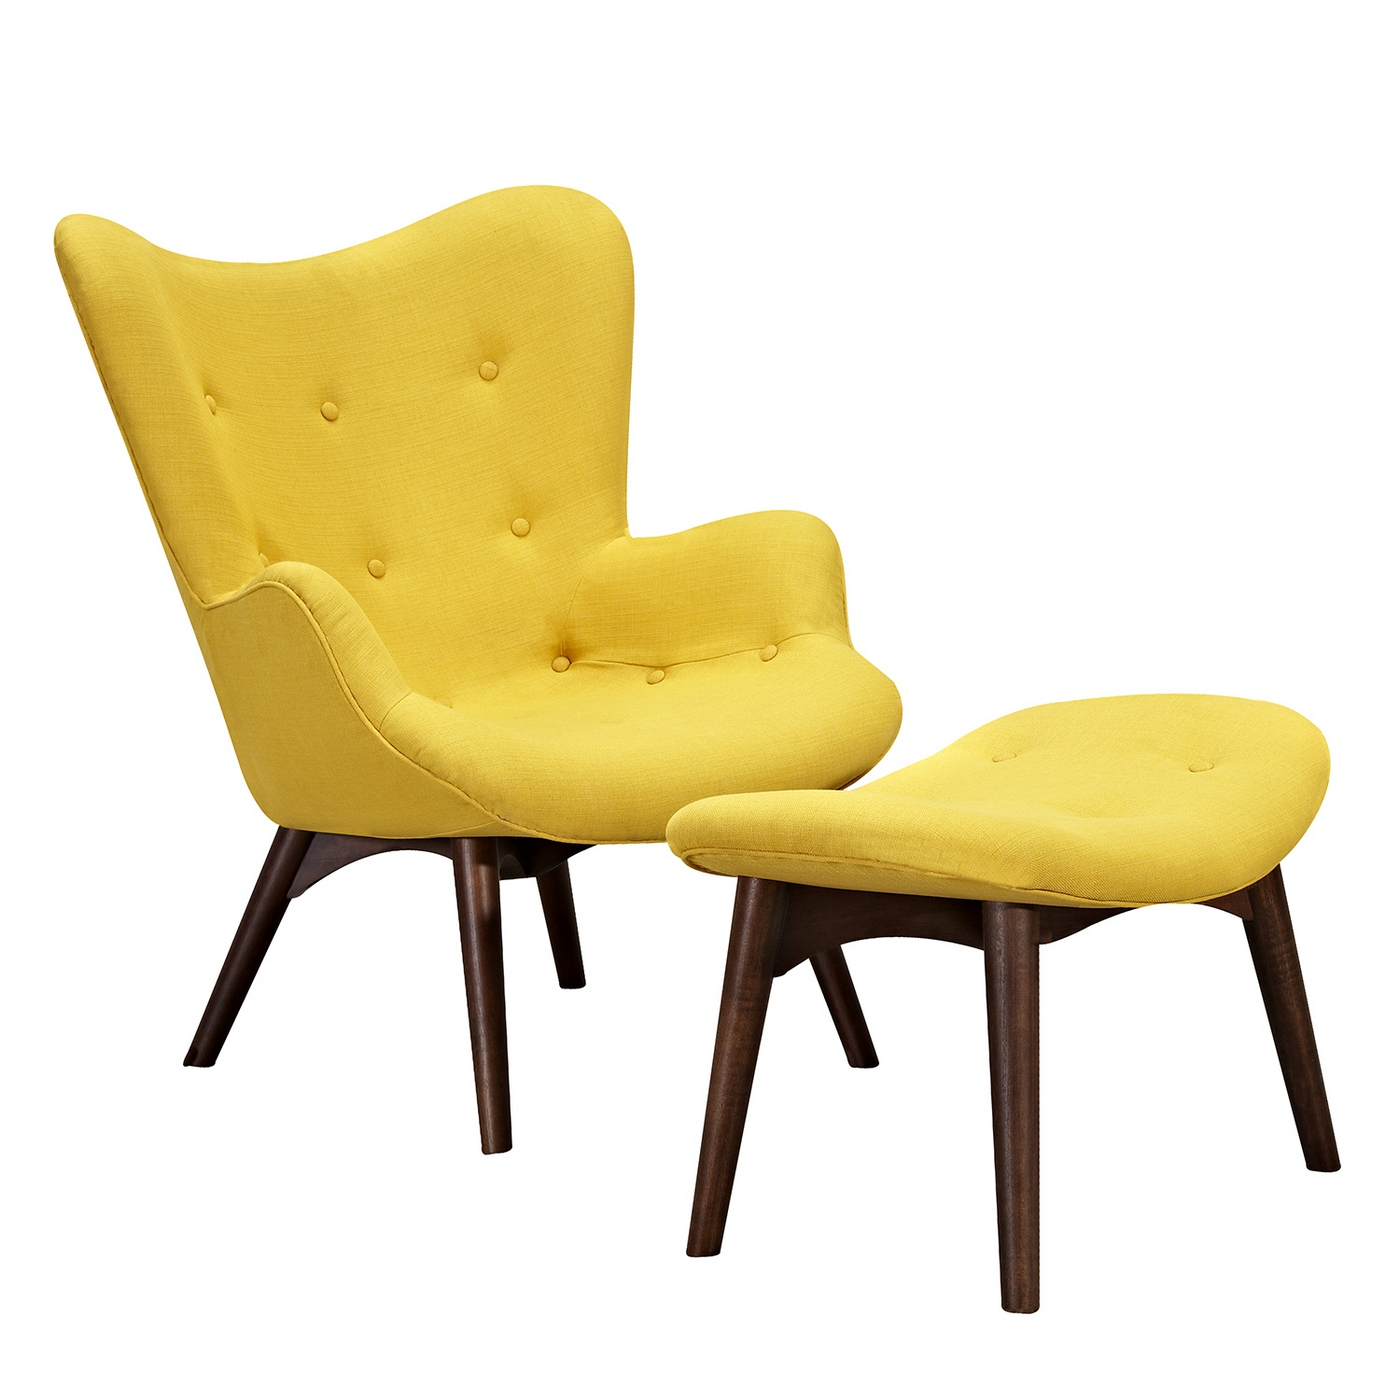 Mid Century Chair And Ottoman Aiden Mid Century Modern Yellow Fabric Chair And Ottoman In